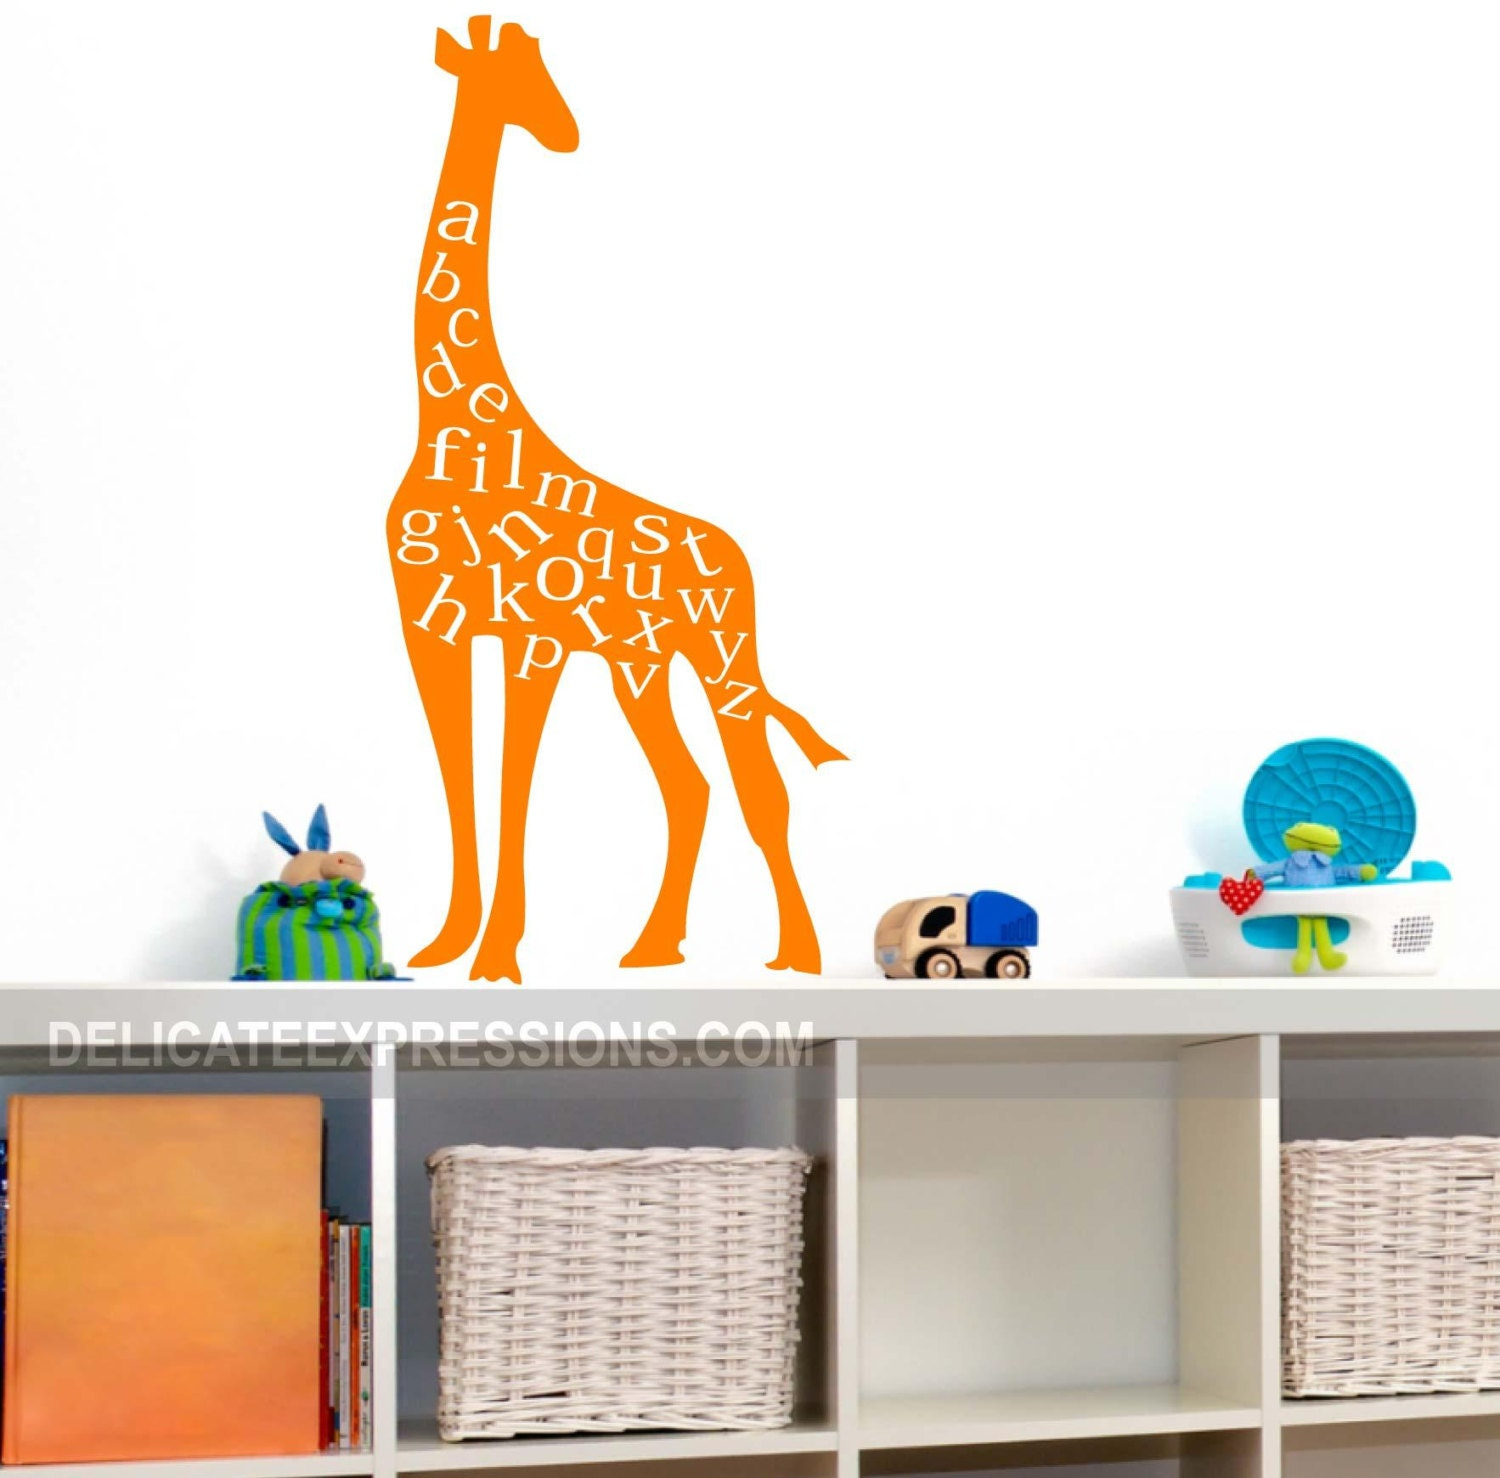 Alphabet Wall Decal ABC Playroom Wall Decal Giraffe Wall Decal Vinyl Lettering Childrens Decor Vinyl Decal Kids Vinyl Wall Art  sc 1 st  stone creek wall decals & Alphabet Wall Decal ABC Playroom Wall Decal Giraffe Wall Decal Vinyl ...